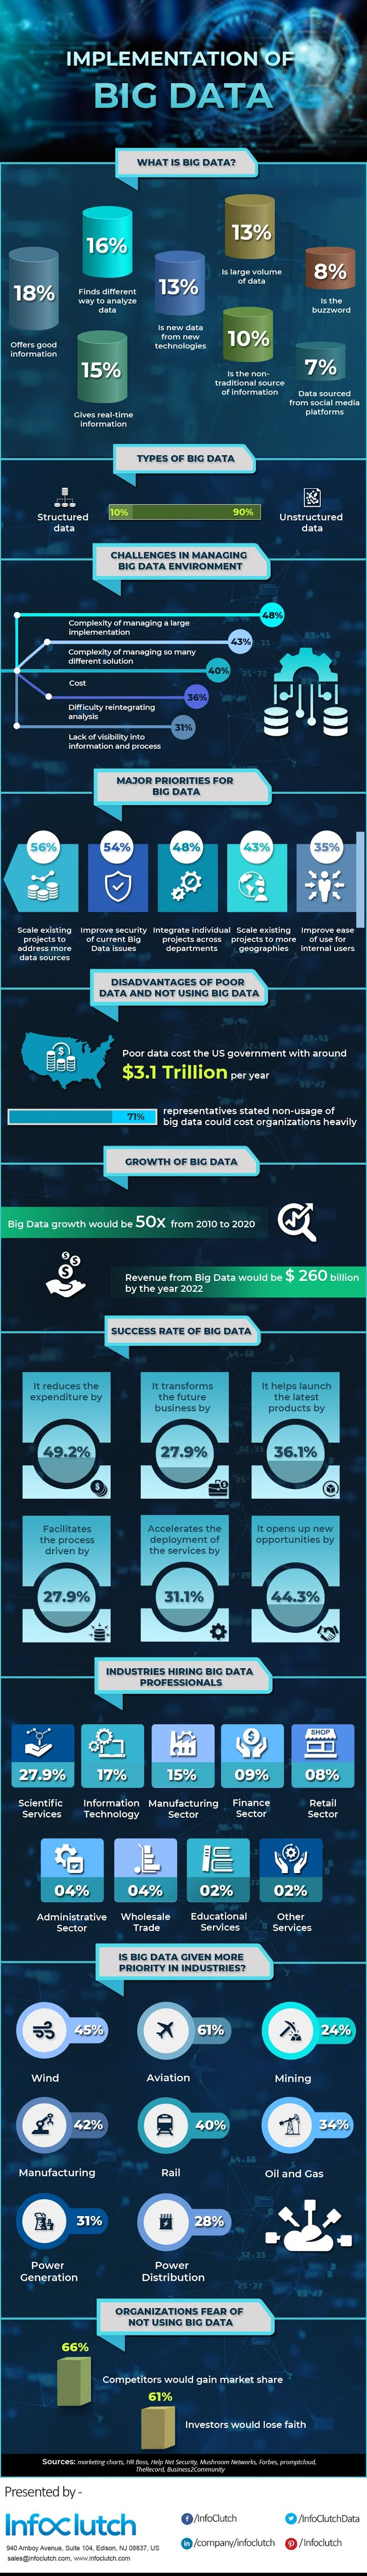 Implementation of Big Data #infographic #Technology #Big Data #Data